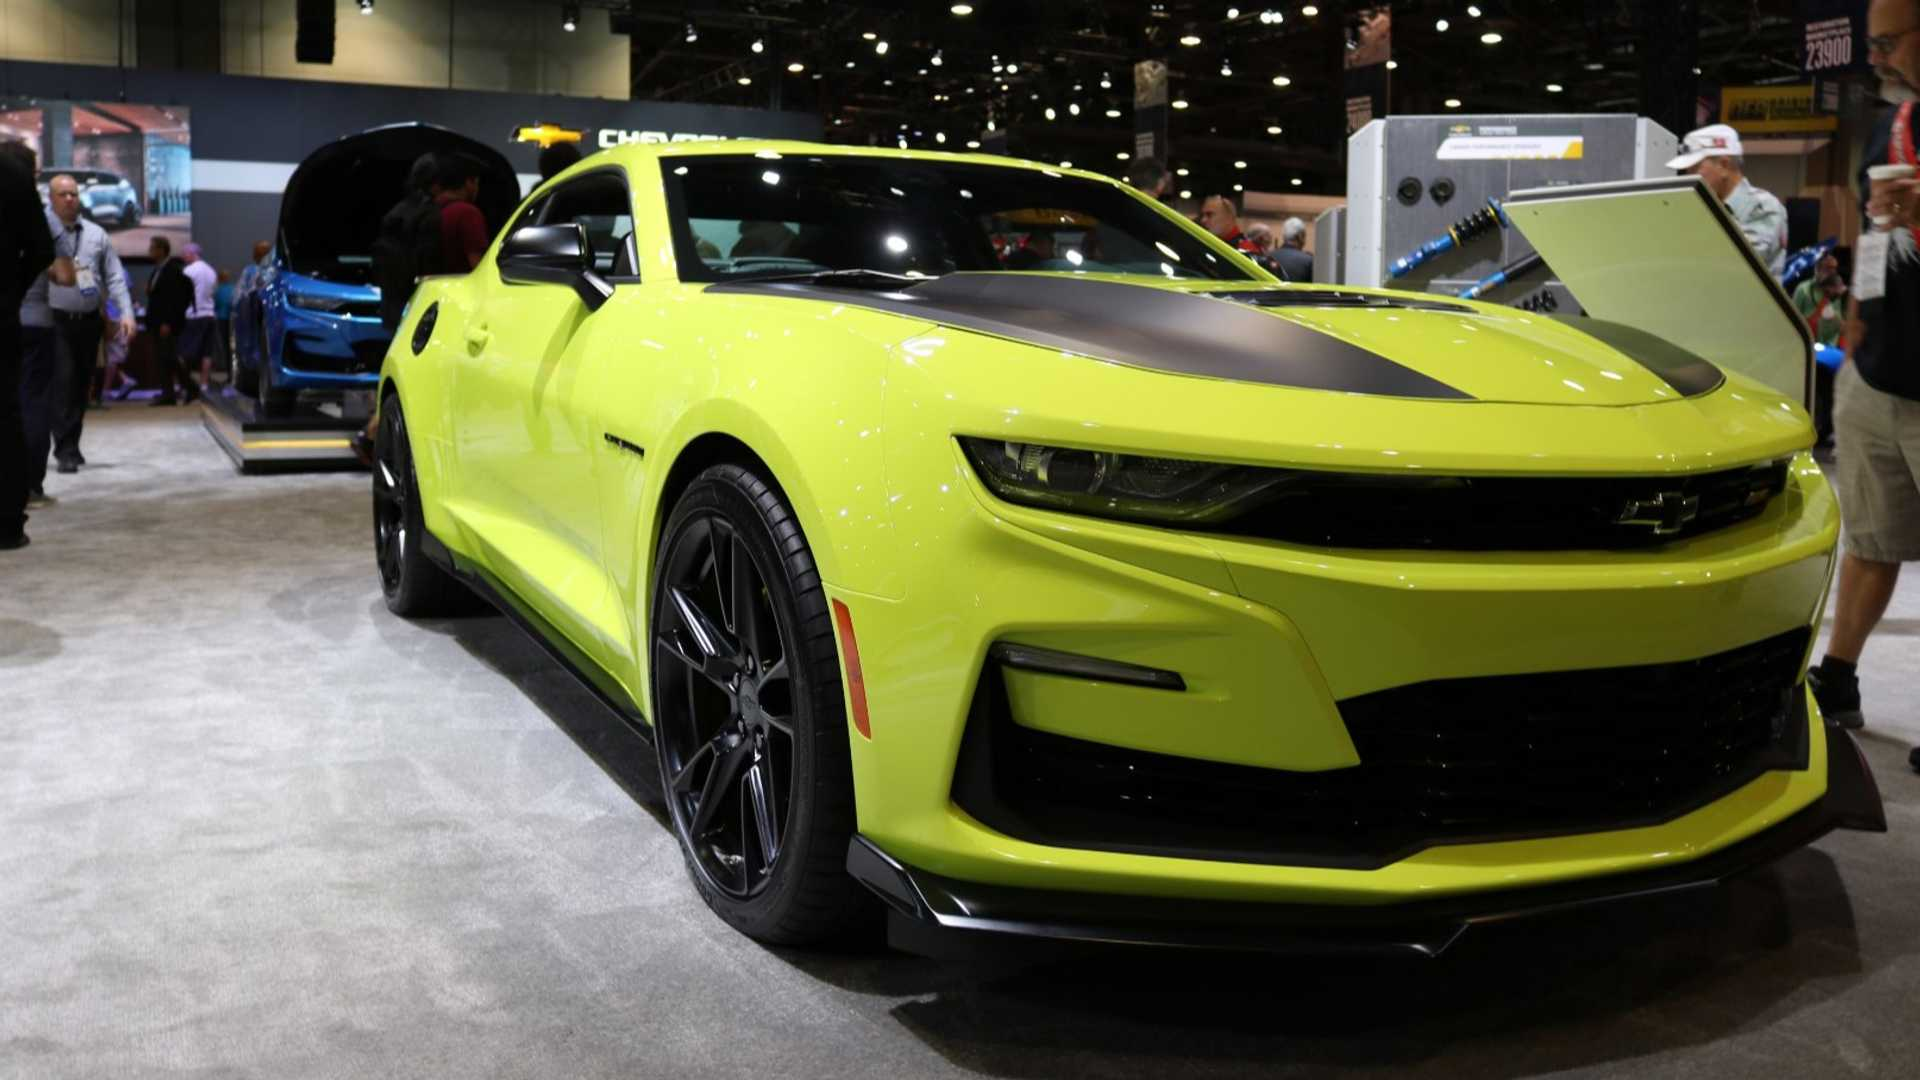 90 Great The 2019 Chevrolet Camaro Yellow Exterior Ratings with The 2019 Chevrolet Camaro Yellow Exterior